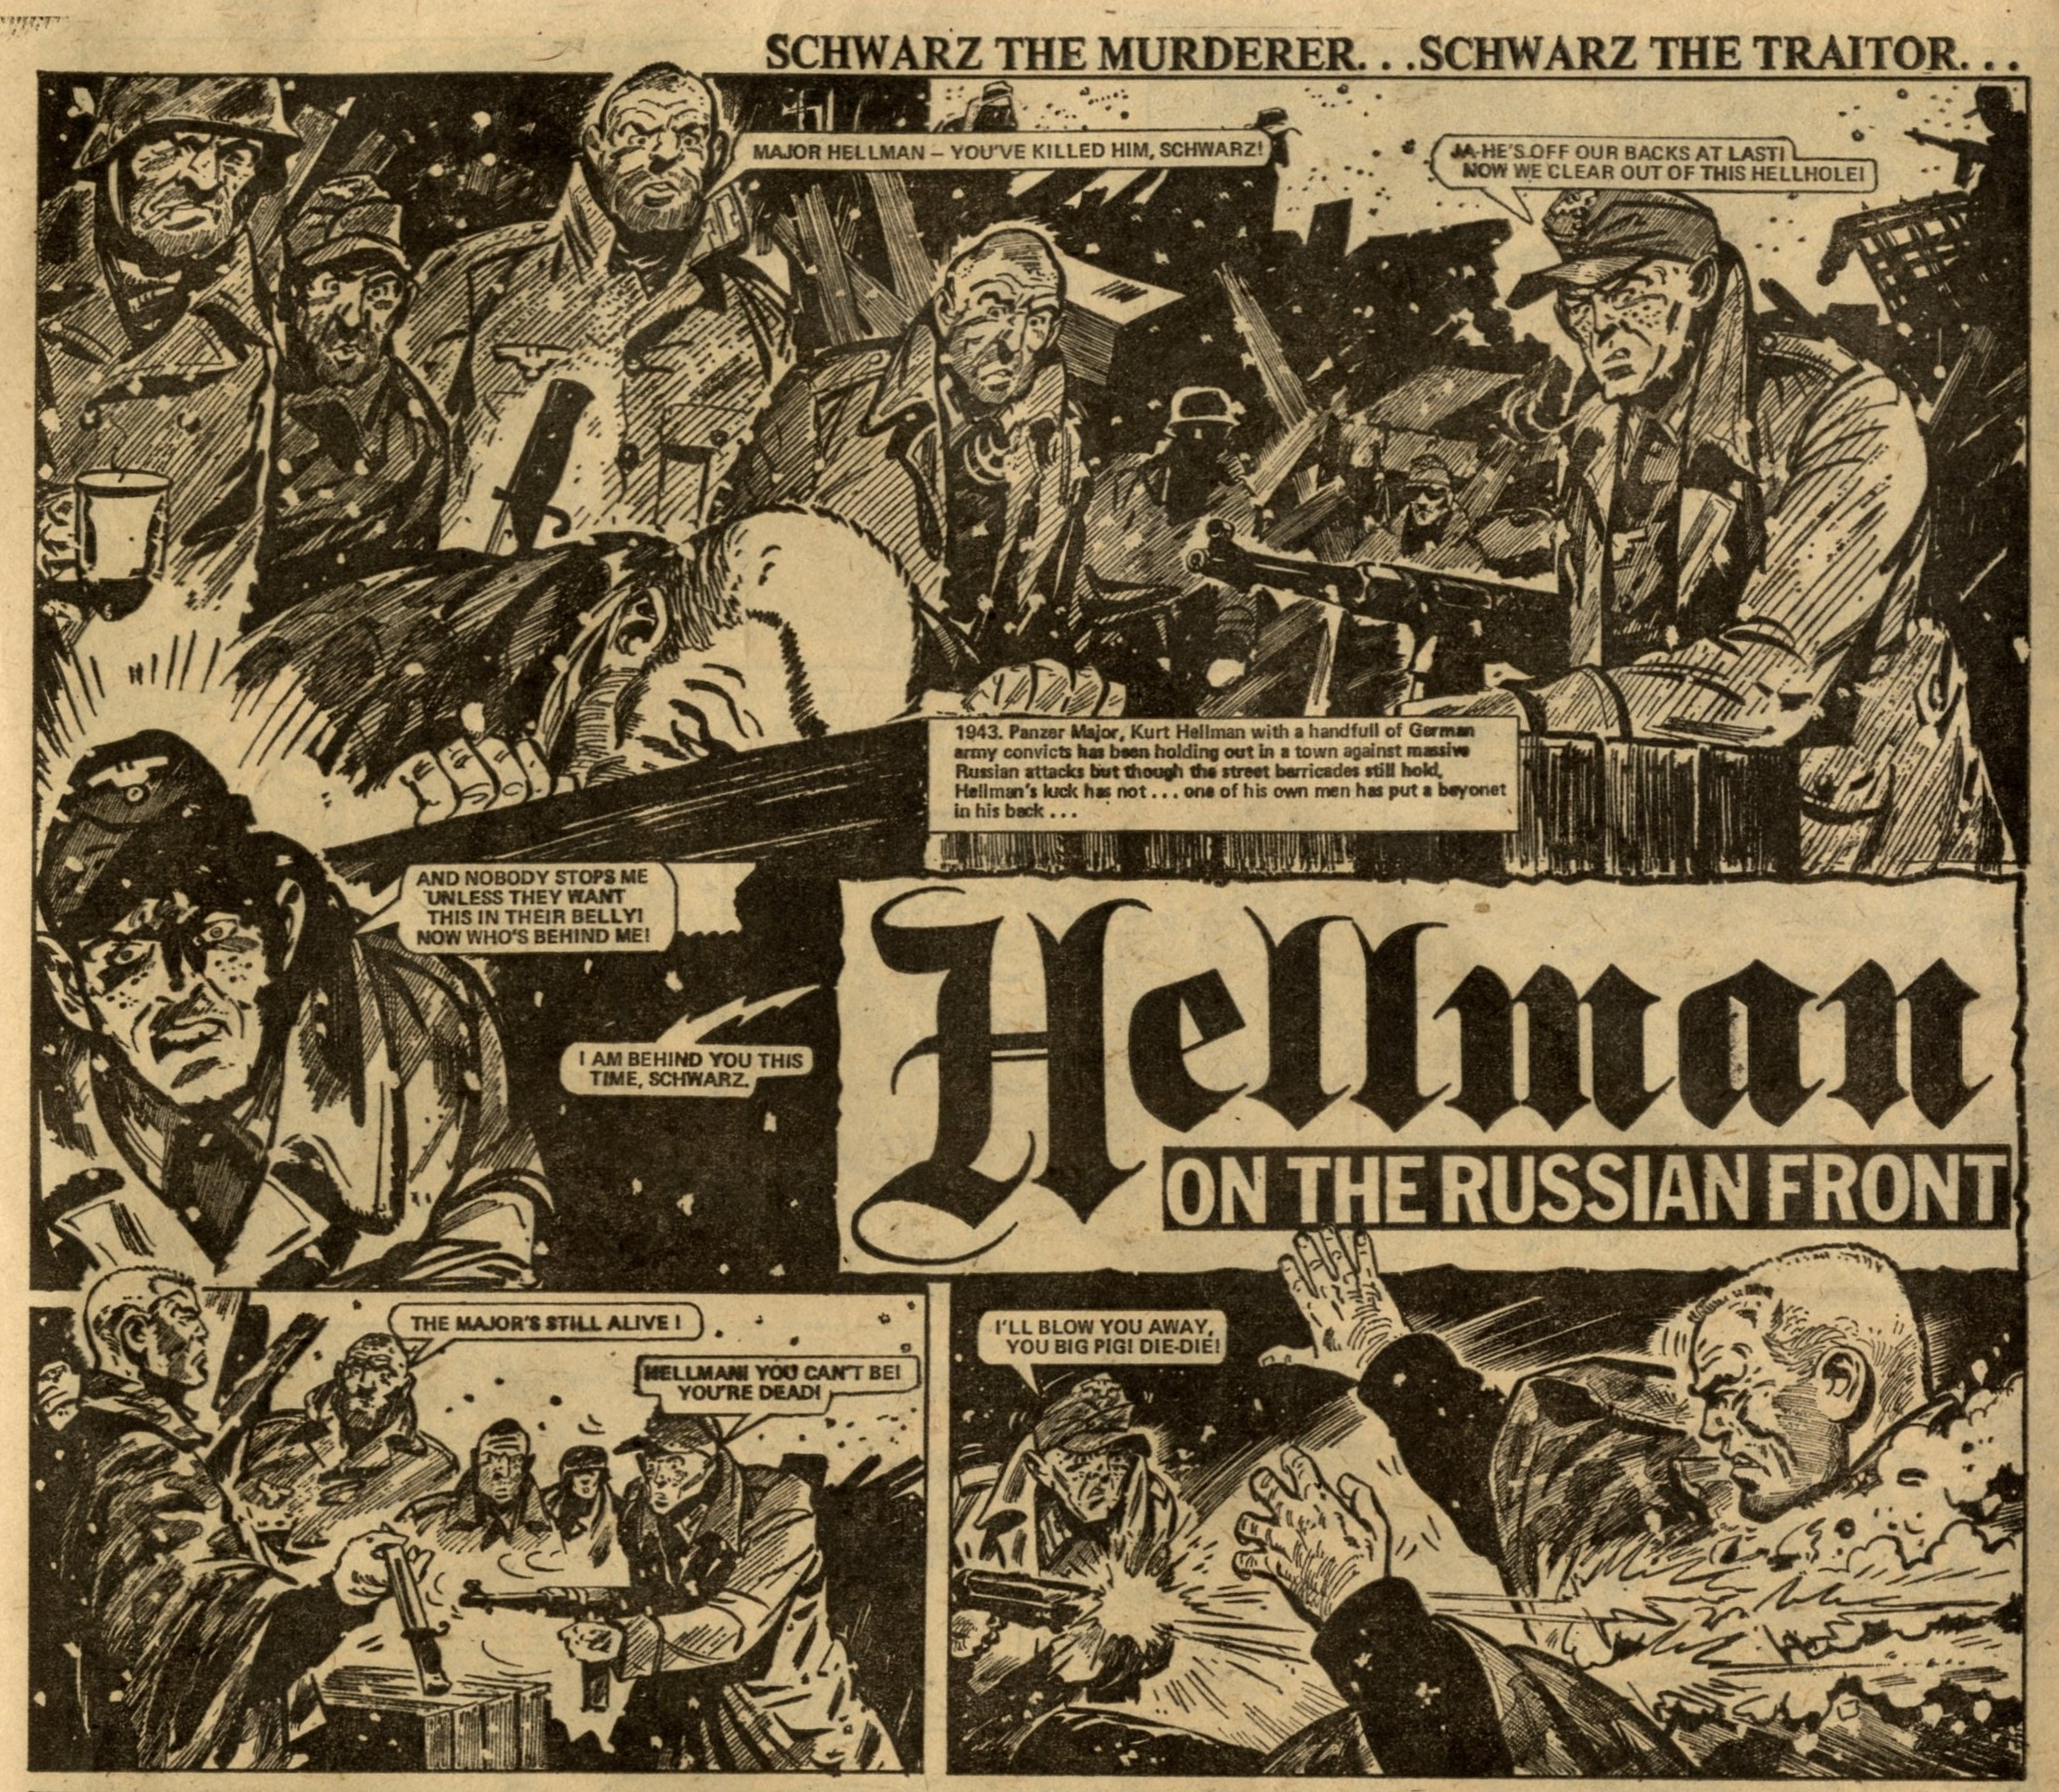 Hellman of the Russian Front: Gerry Finley-Day (writer), Eric Bradbury? (artist)